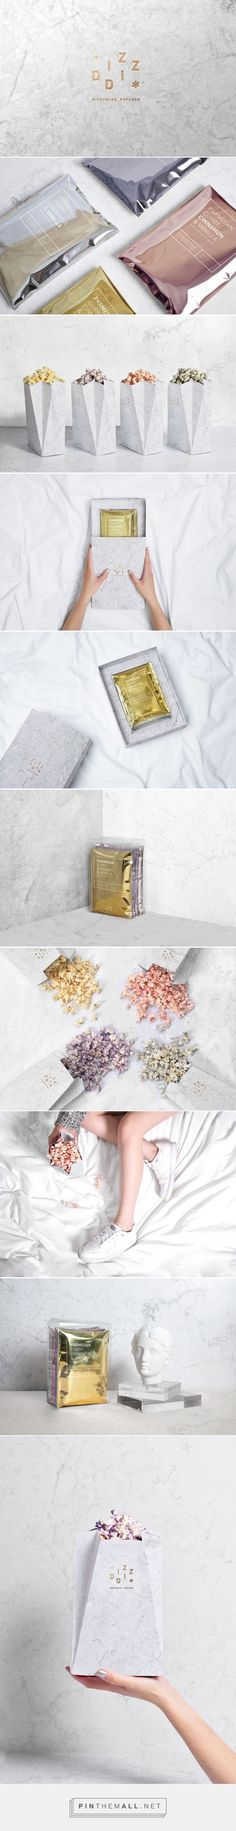 Art direction, branding and packaging for Diz-Diz Popcorn on Behance by Tatabi Studio Valencia, Spain curated by Packaging Diva PD. Yummy gourmet brand of premium popcorn.: